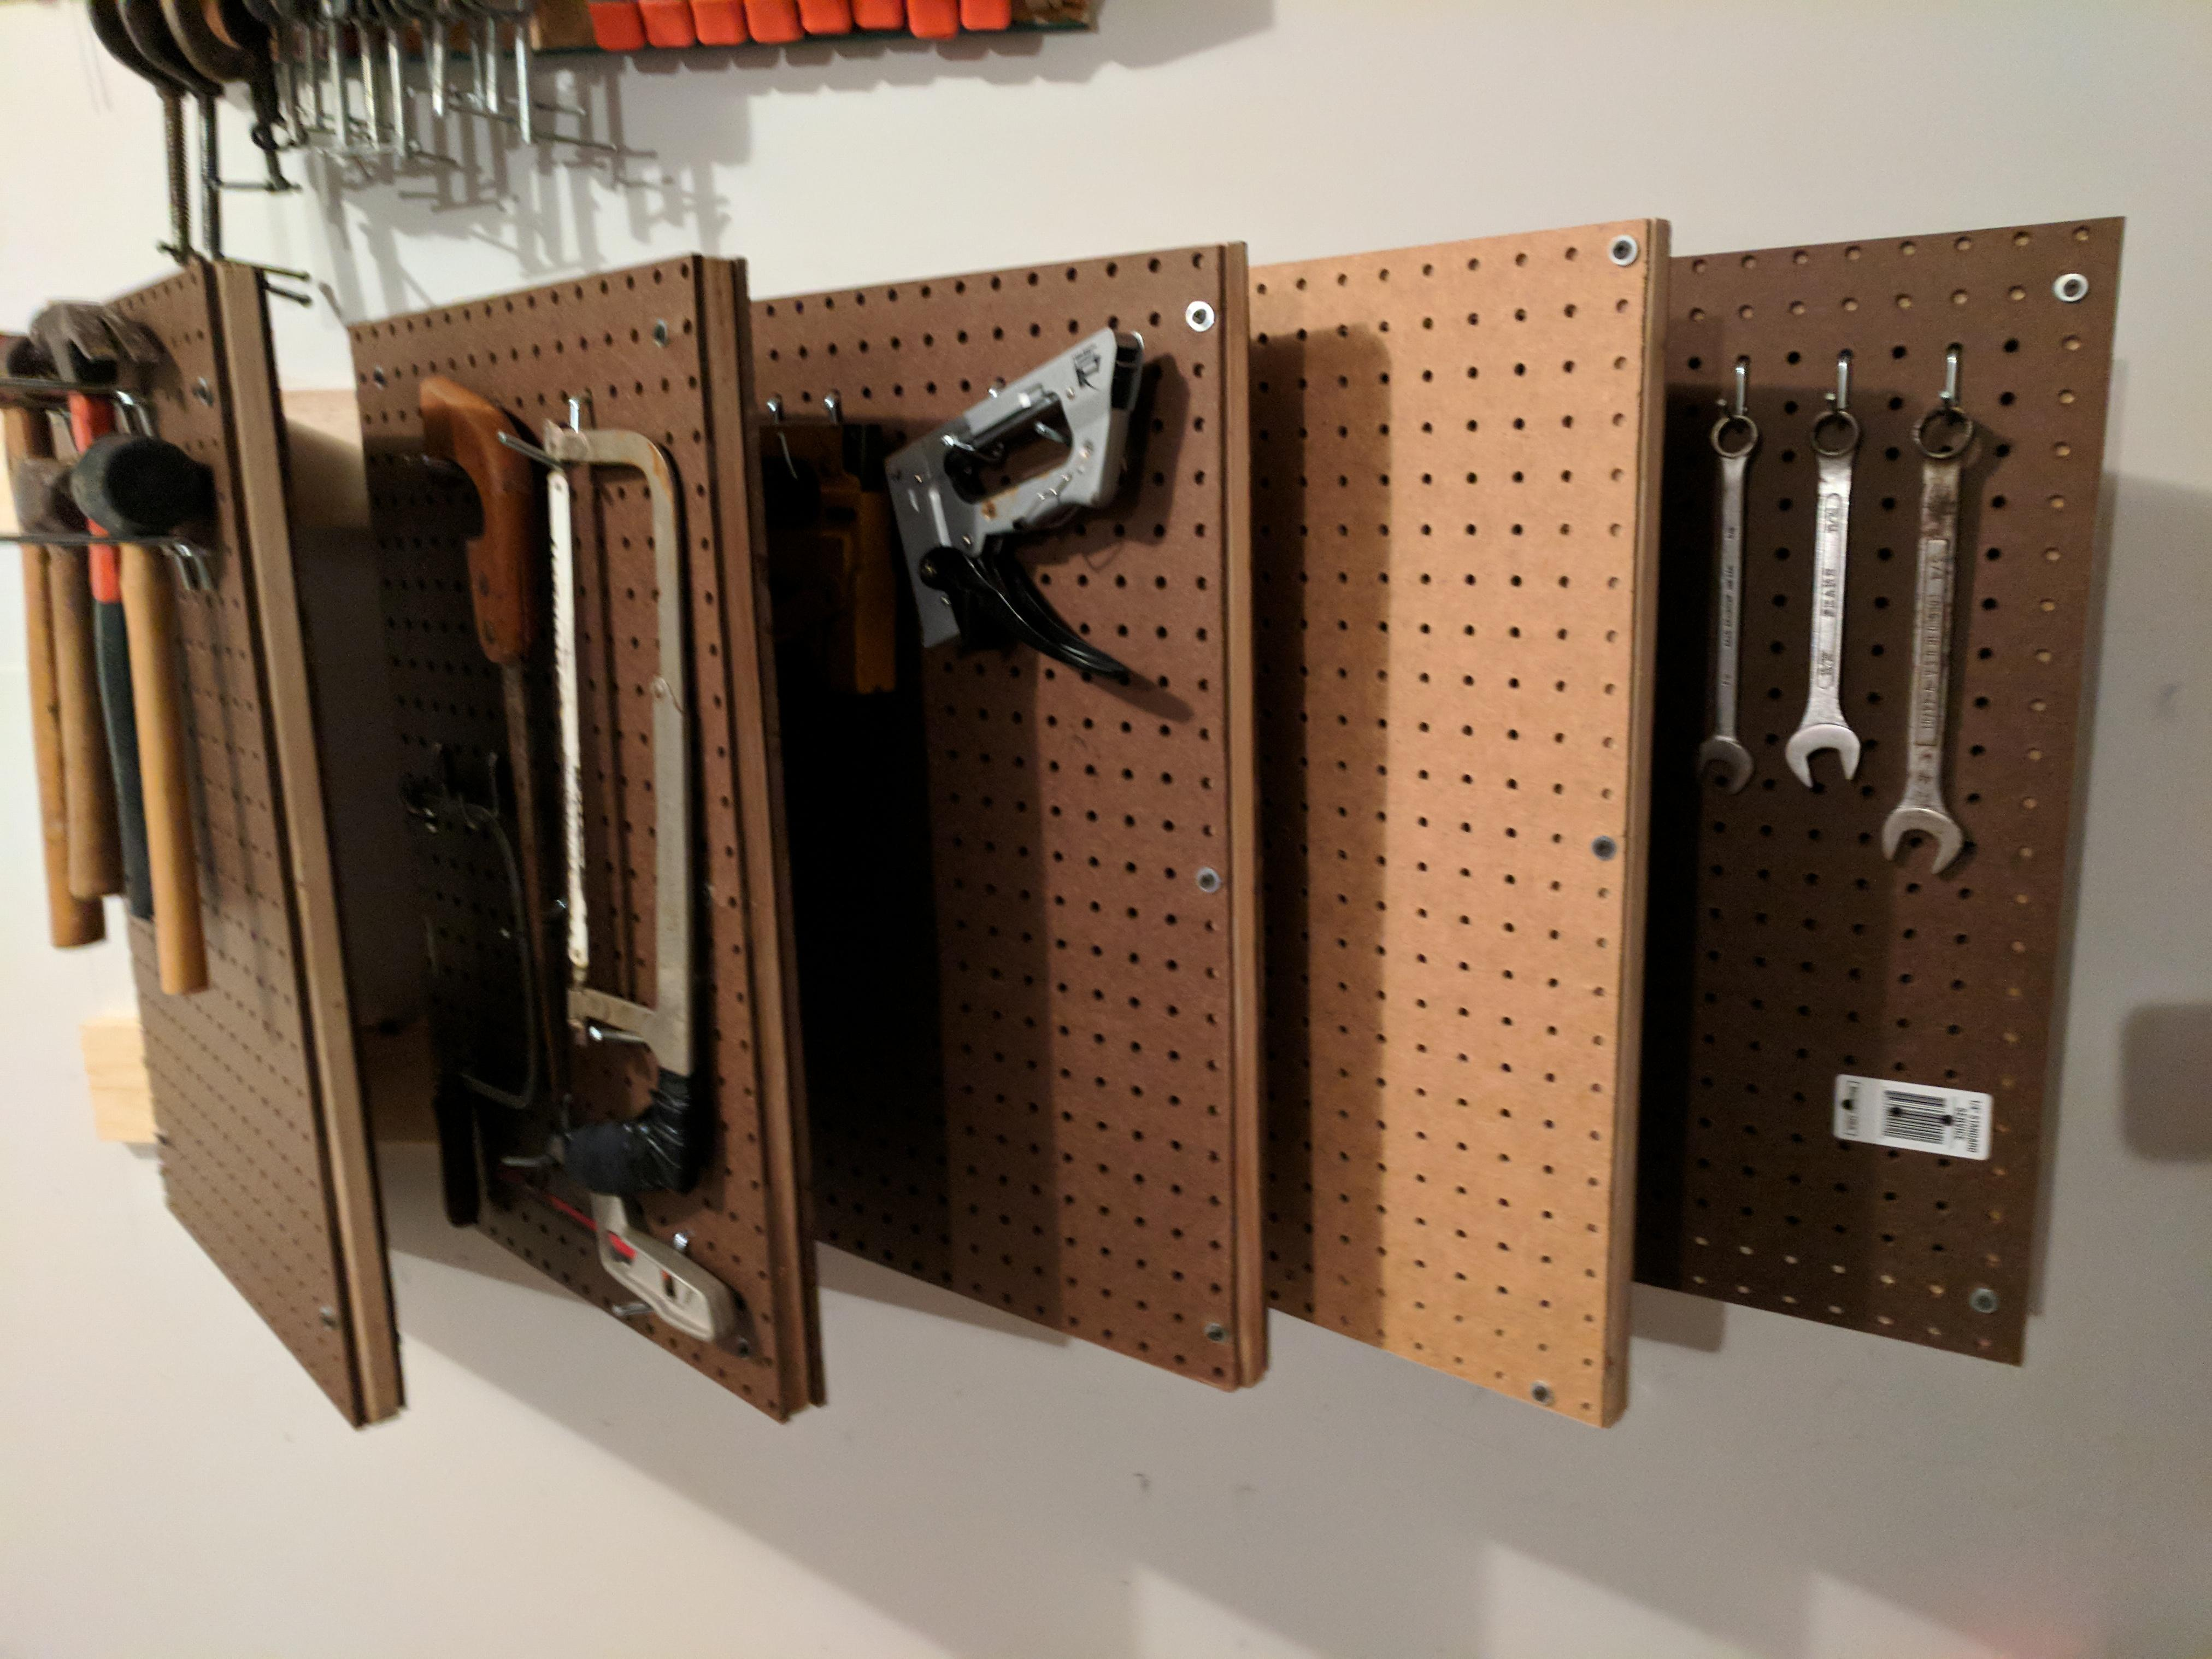 Garage Cabinets Reddit Contest Pegboard Organization For Small Shop Space